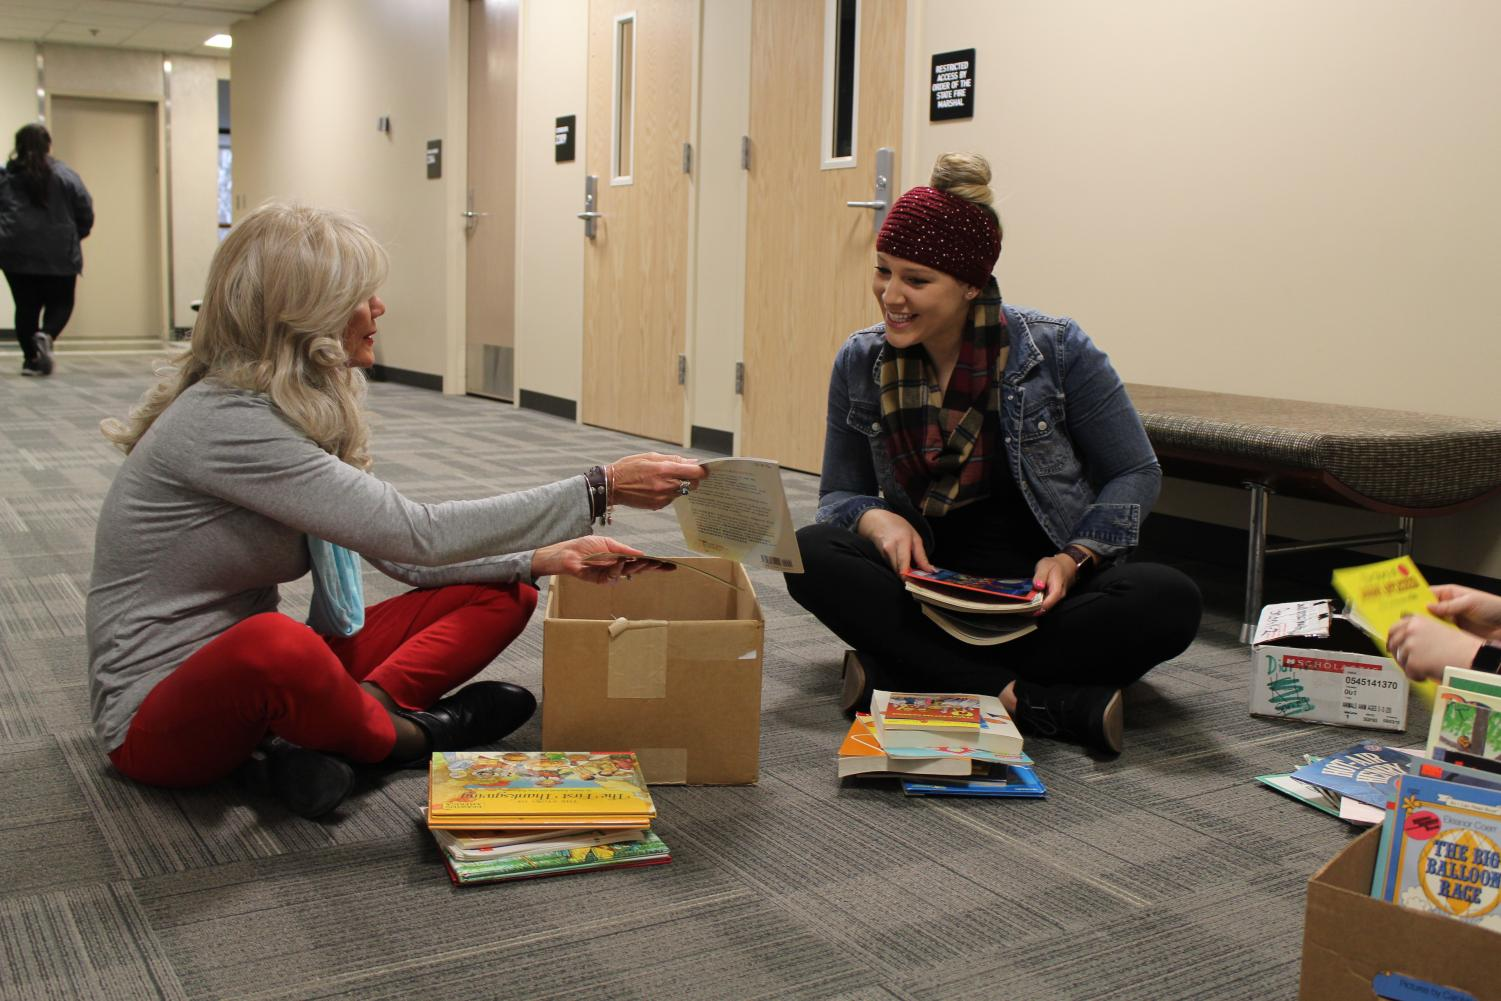 Professor Celeste Roseberry-McKibbin and Sac State communication sciences and disorders major Marisa Dix sit on the floor at Folsom Hall counting and sorting through book donations. Dix has been helping Roseberry-McKibbin for about a year after hearing about Roseberry-McKibbin's Love Talk Read program during one of her classes.